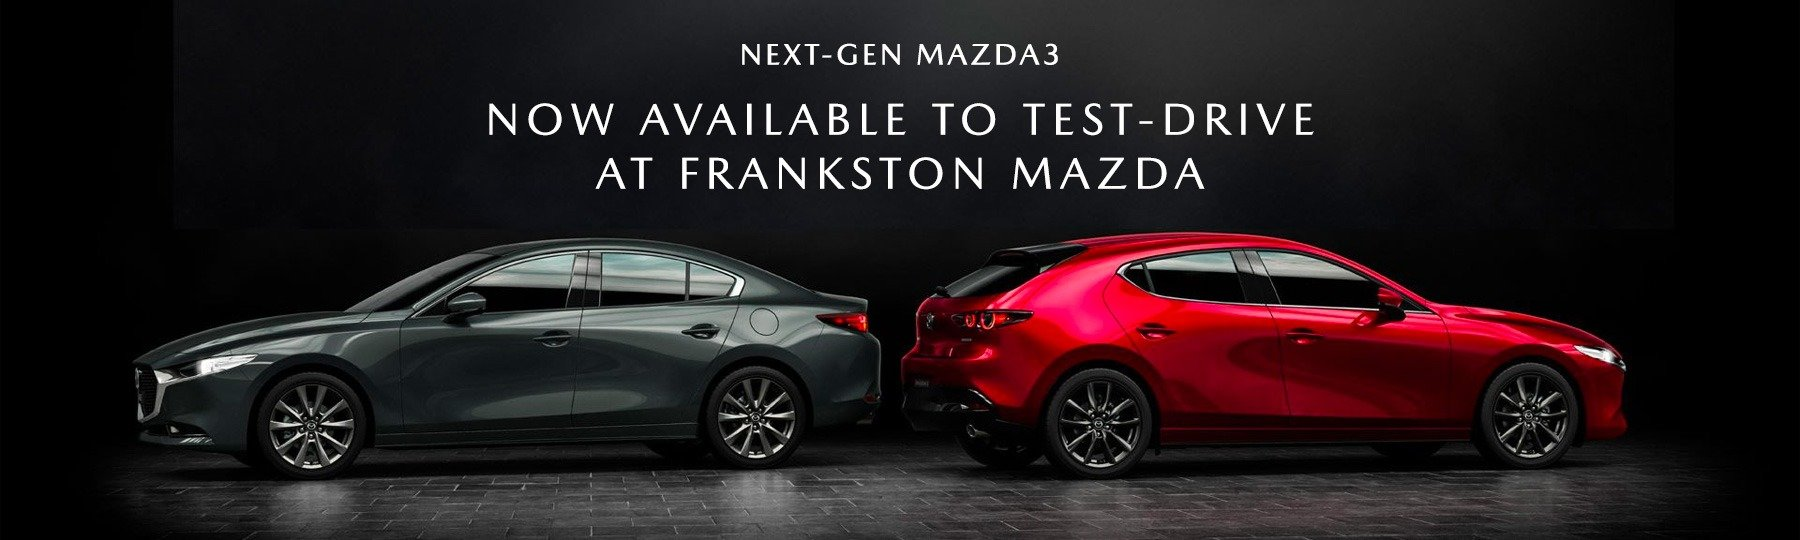 Mazda3 now available for test drives